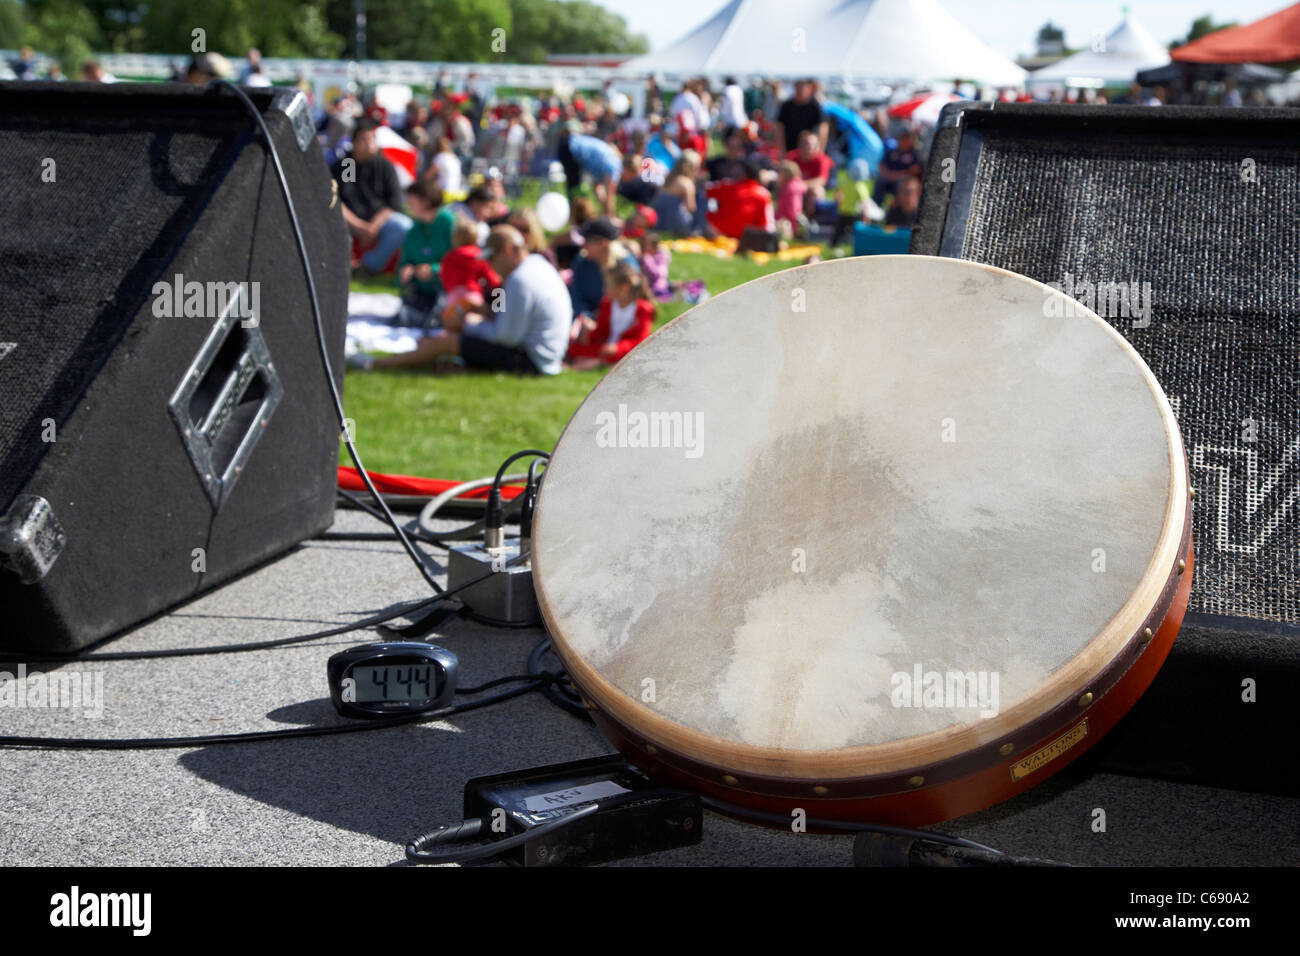 irish bodhran drum clock and monitor speakers on stage at a summer outdoor festival Saskatoon Saskatchewan Canada - Stock Image